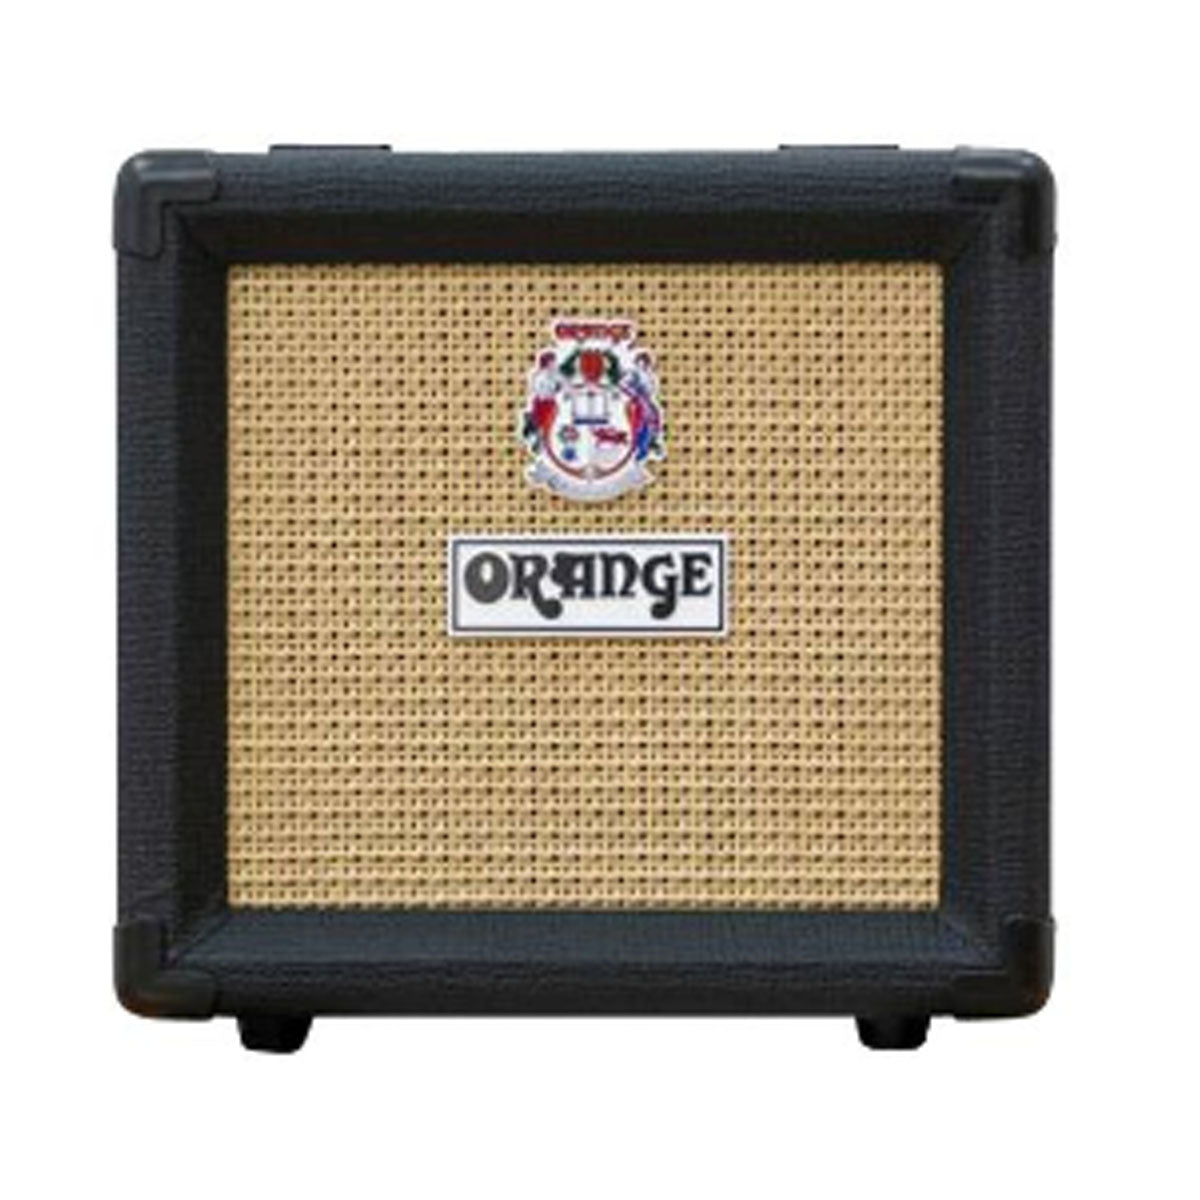 Orange PPC108 Guitar Cabinet 1x8inch Speaker Cab - Black